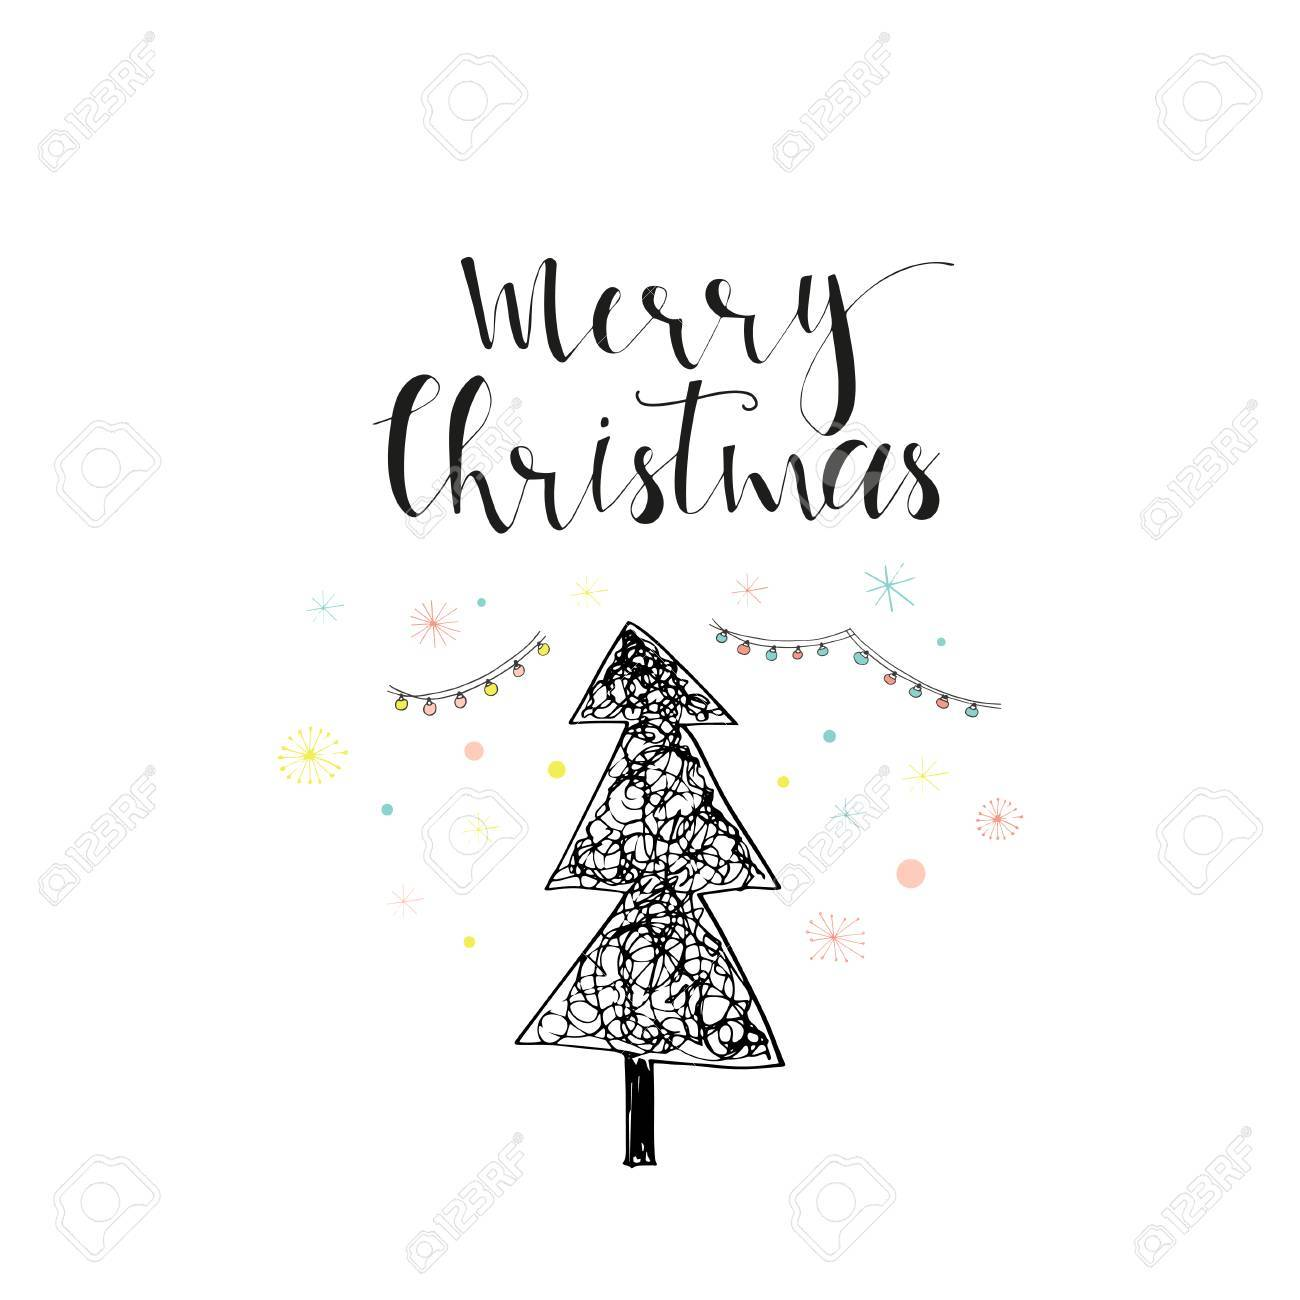 Merry Christmas Cute Greeting Card With Tree Scandinavian Style